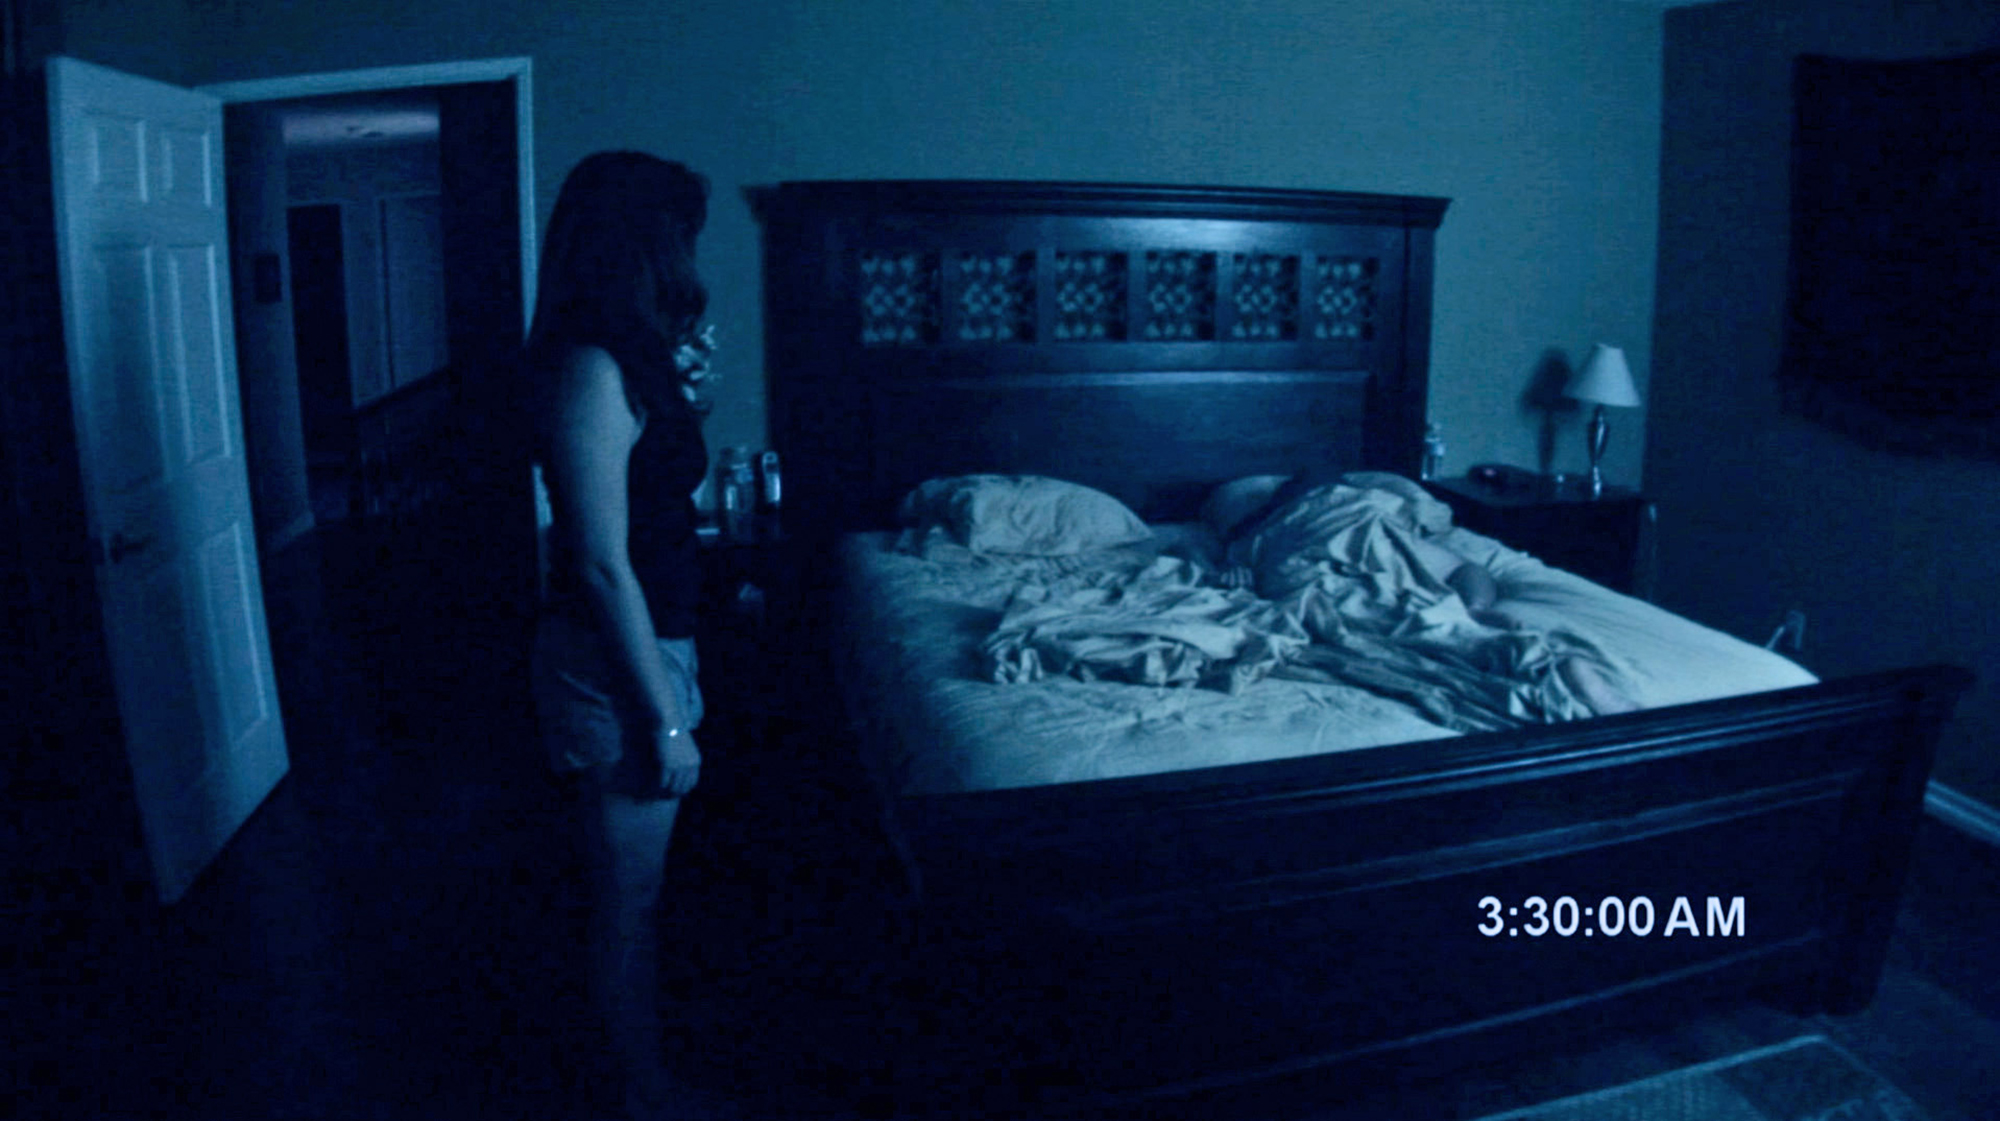 PARANORMAL ACTIVITY, from left: Katie Featherston, Micah Sloat, 2007. ©Paramount Pictures/courtesy E